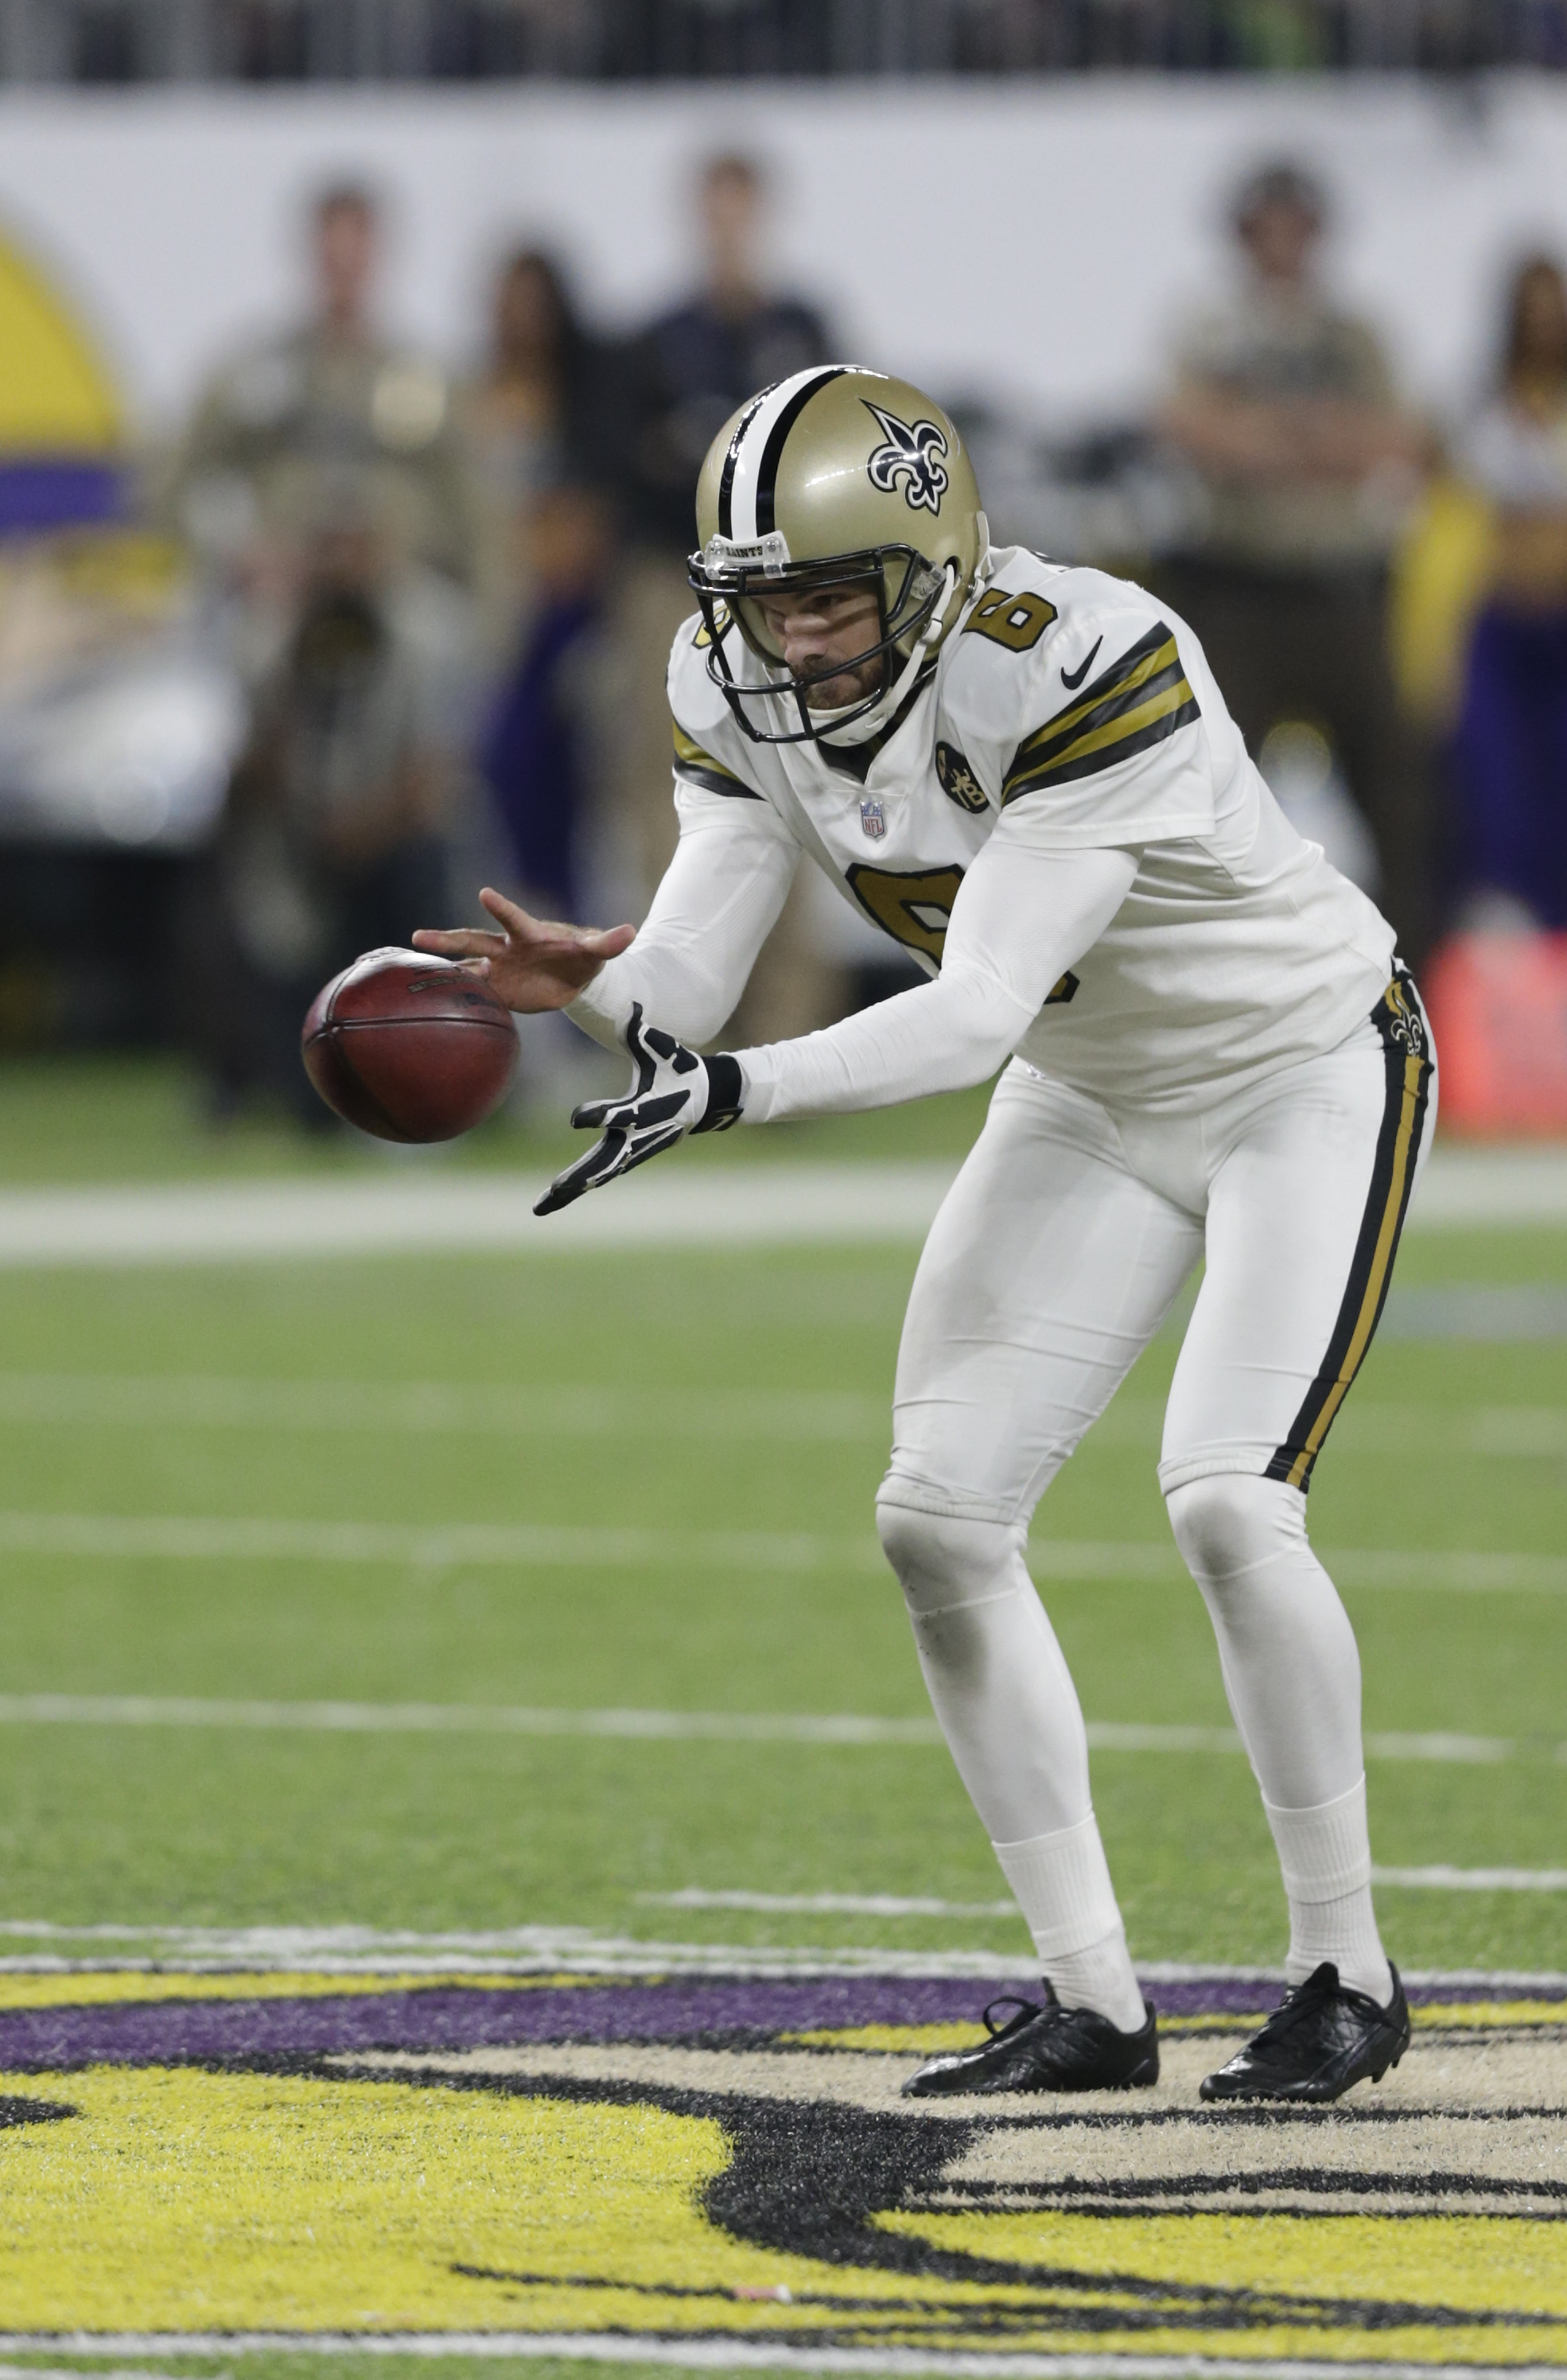 Punt? Why bother for Morstead as Saints set scoring records?